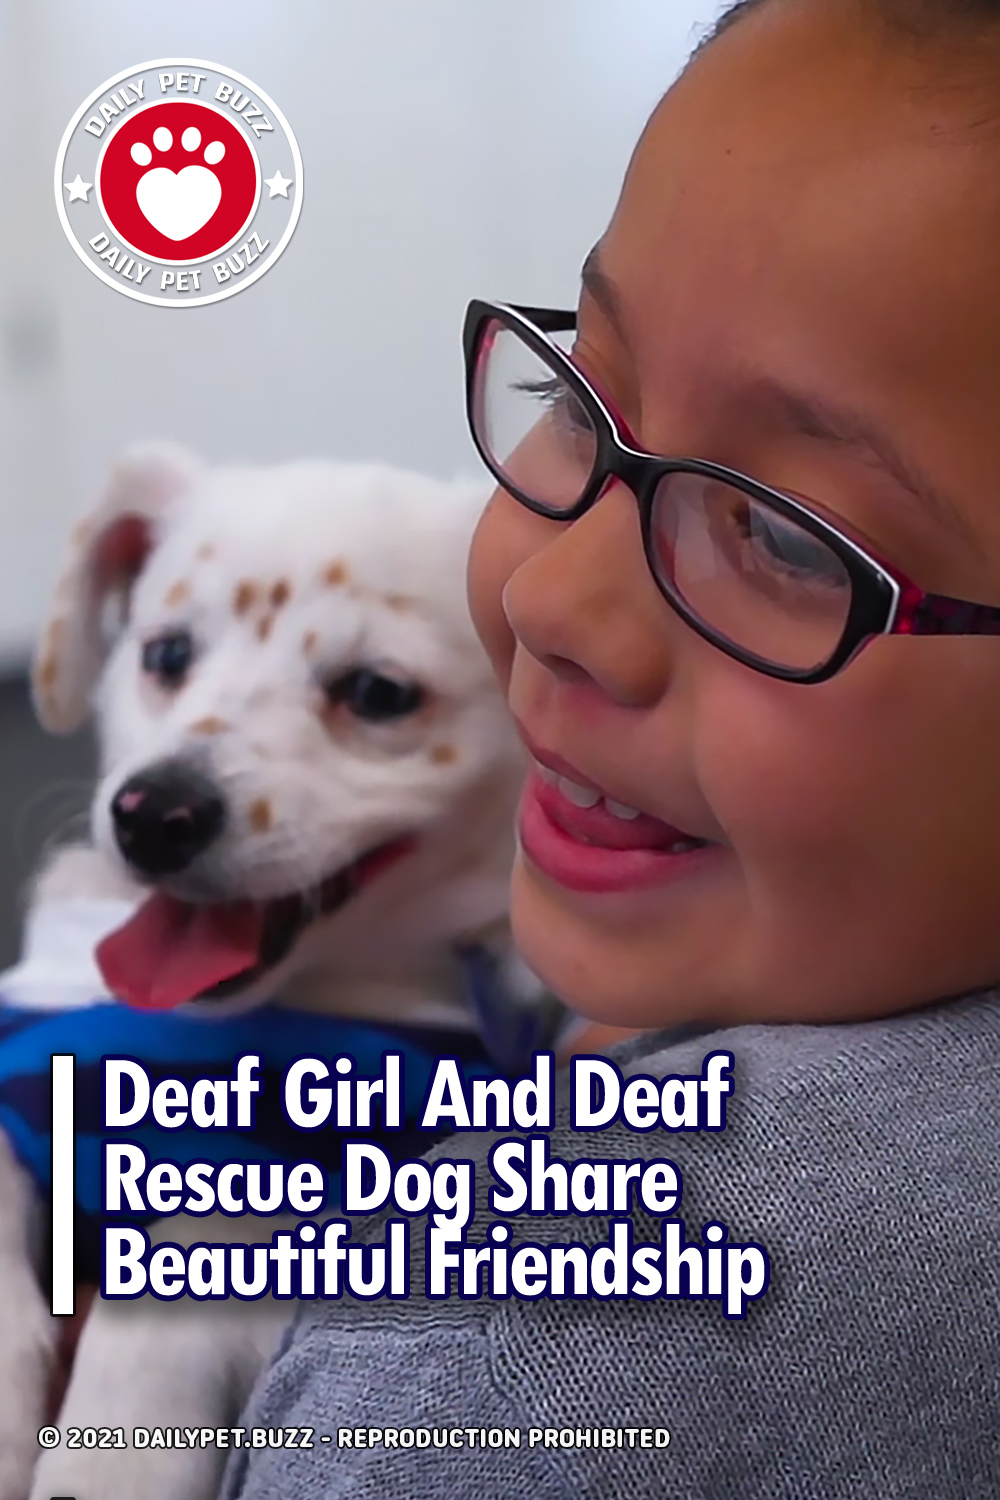 Deaf Girl And Deaf Rescue Dog Share Beautiful Friendship